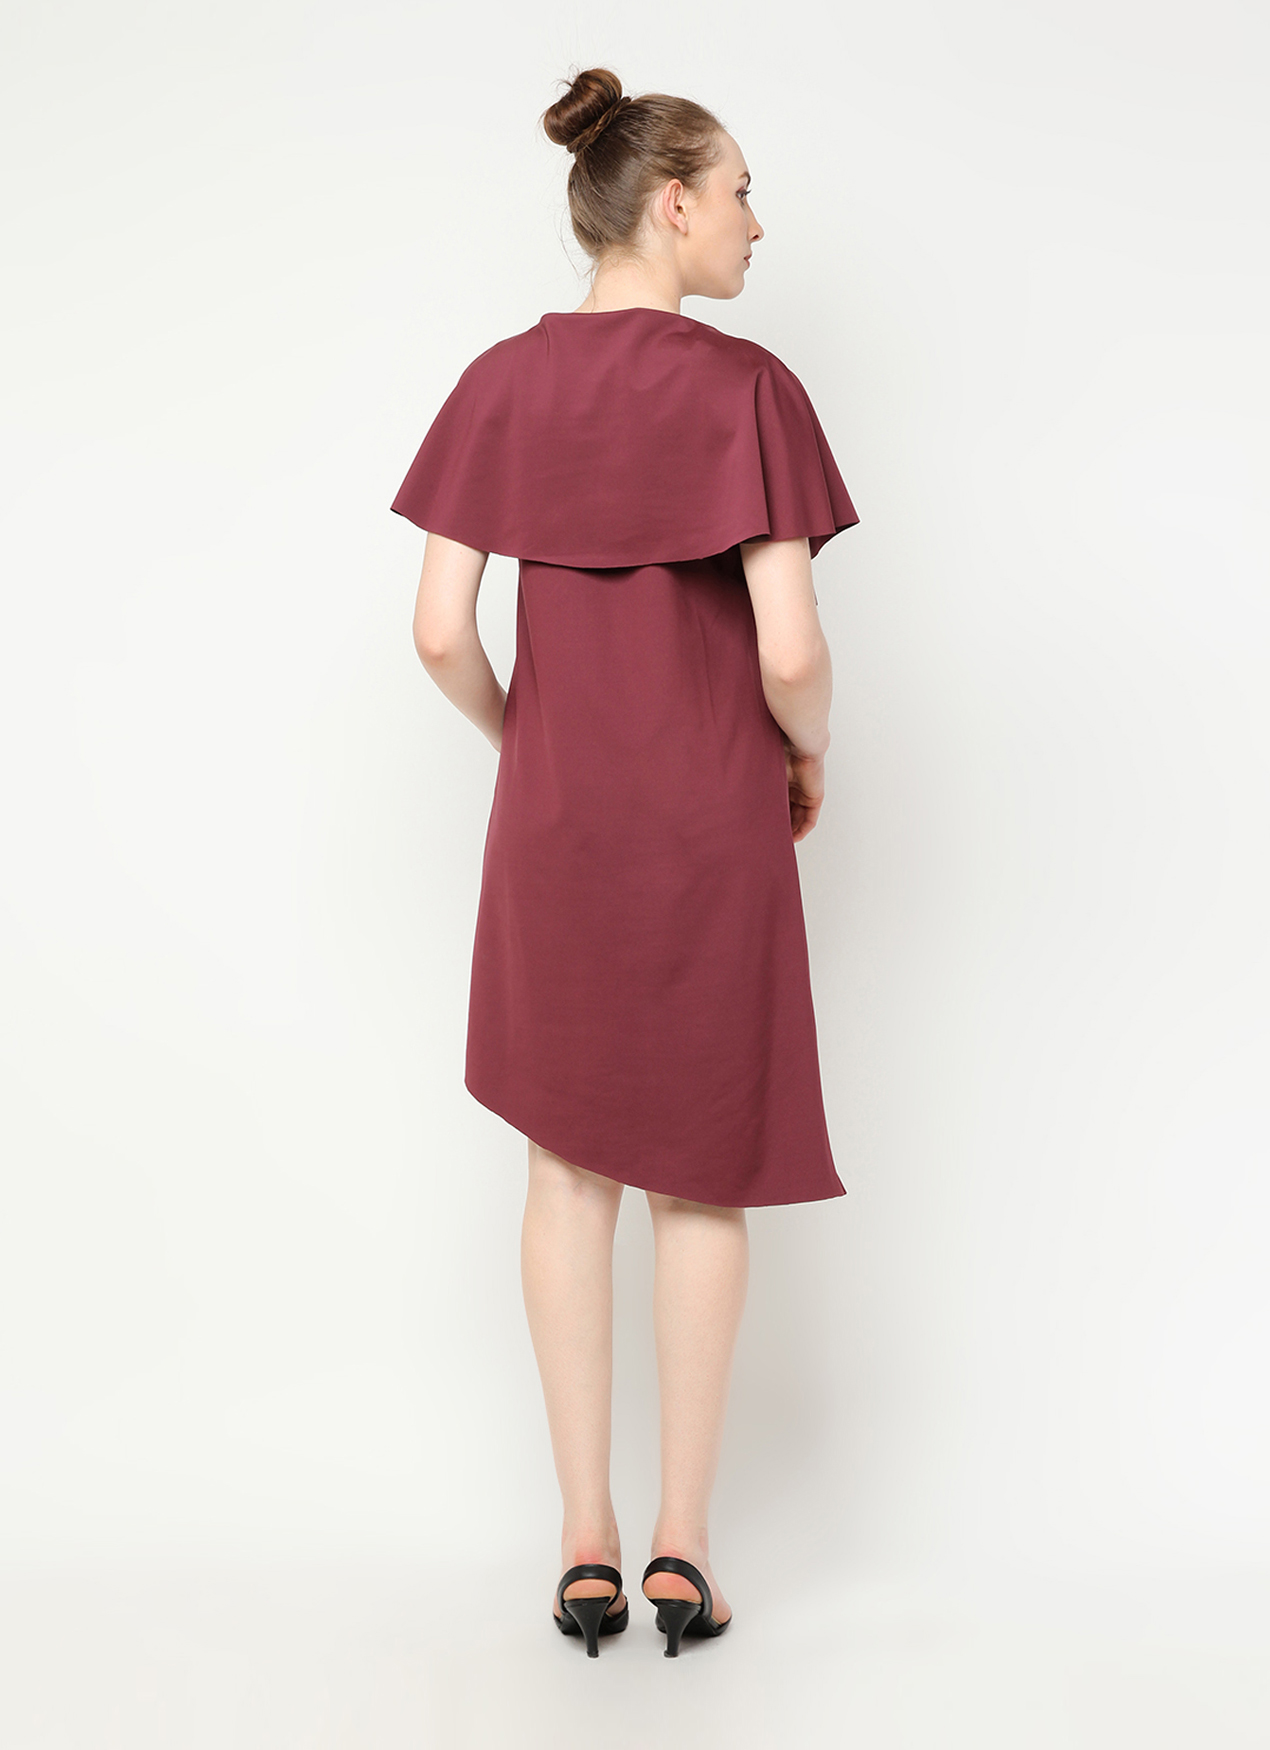 cf7f53d0e57 Buy Original Anynome Audrey Multiway Dress - Maroon at Indonesia ...